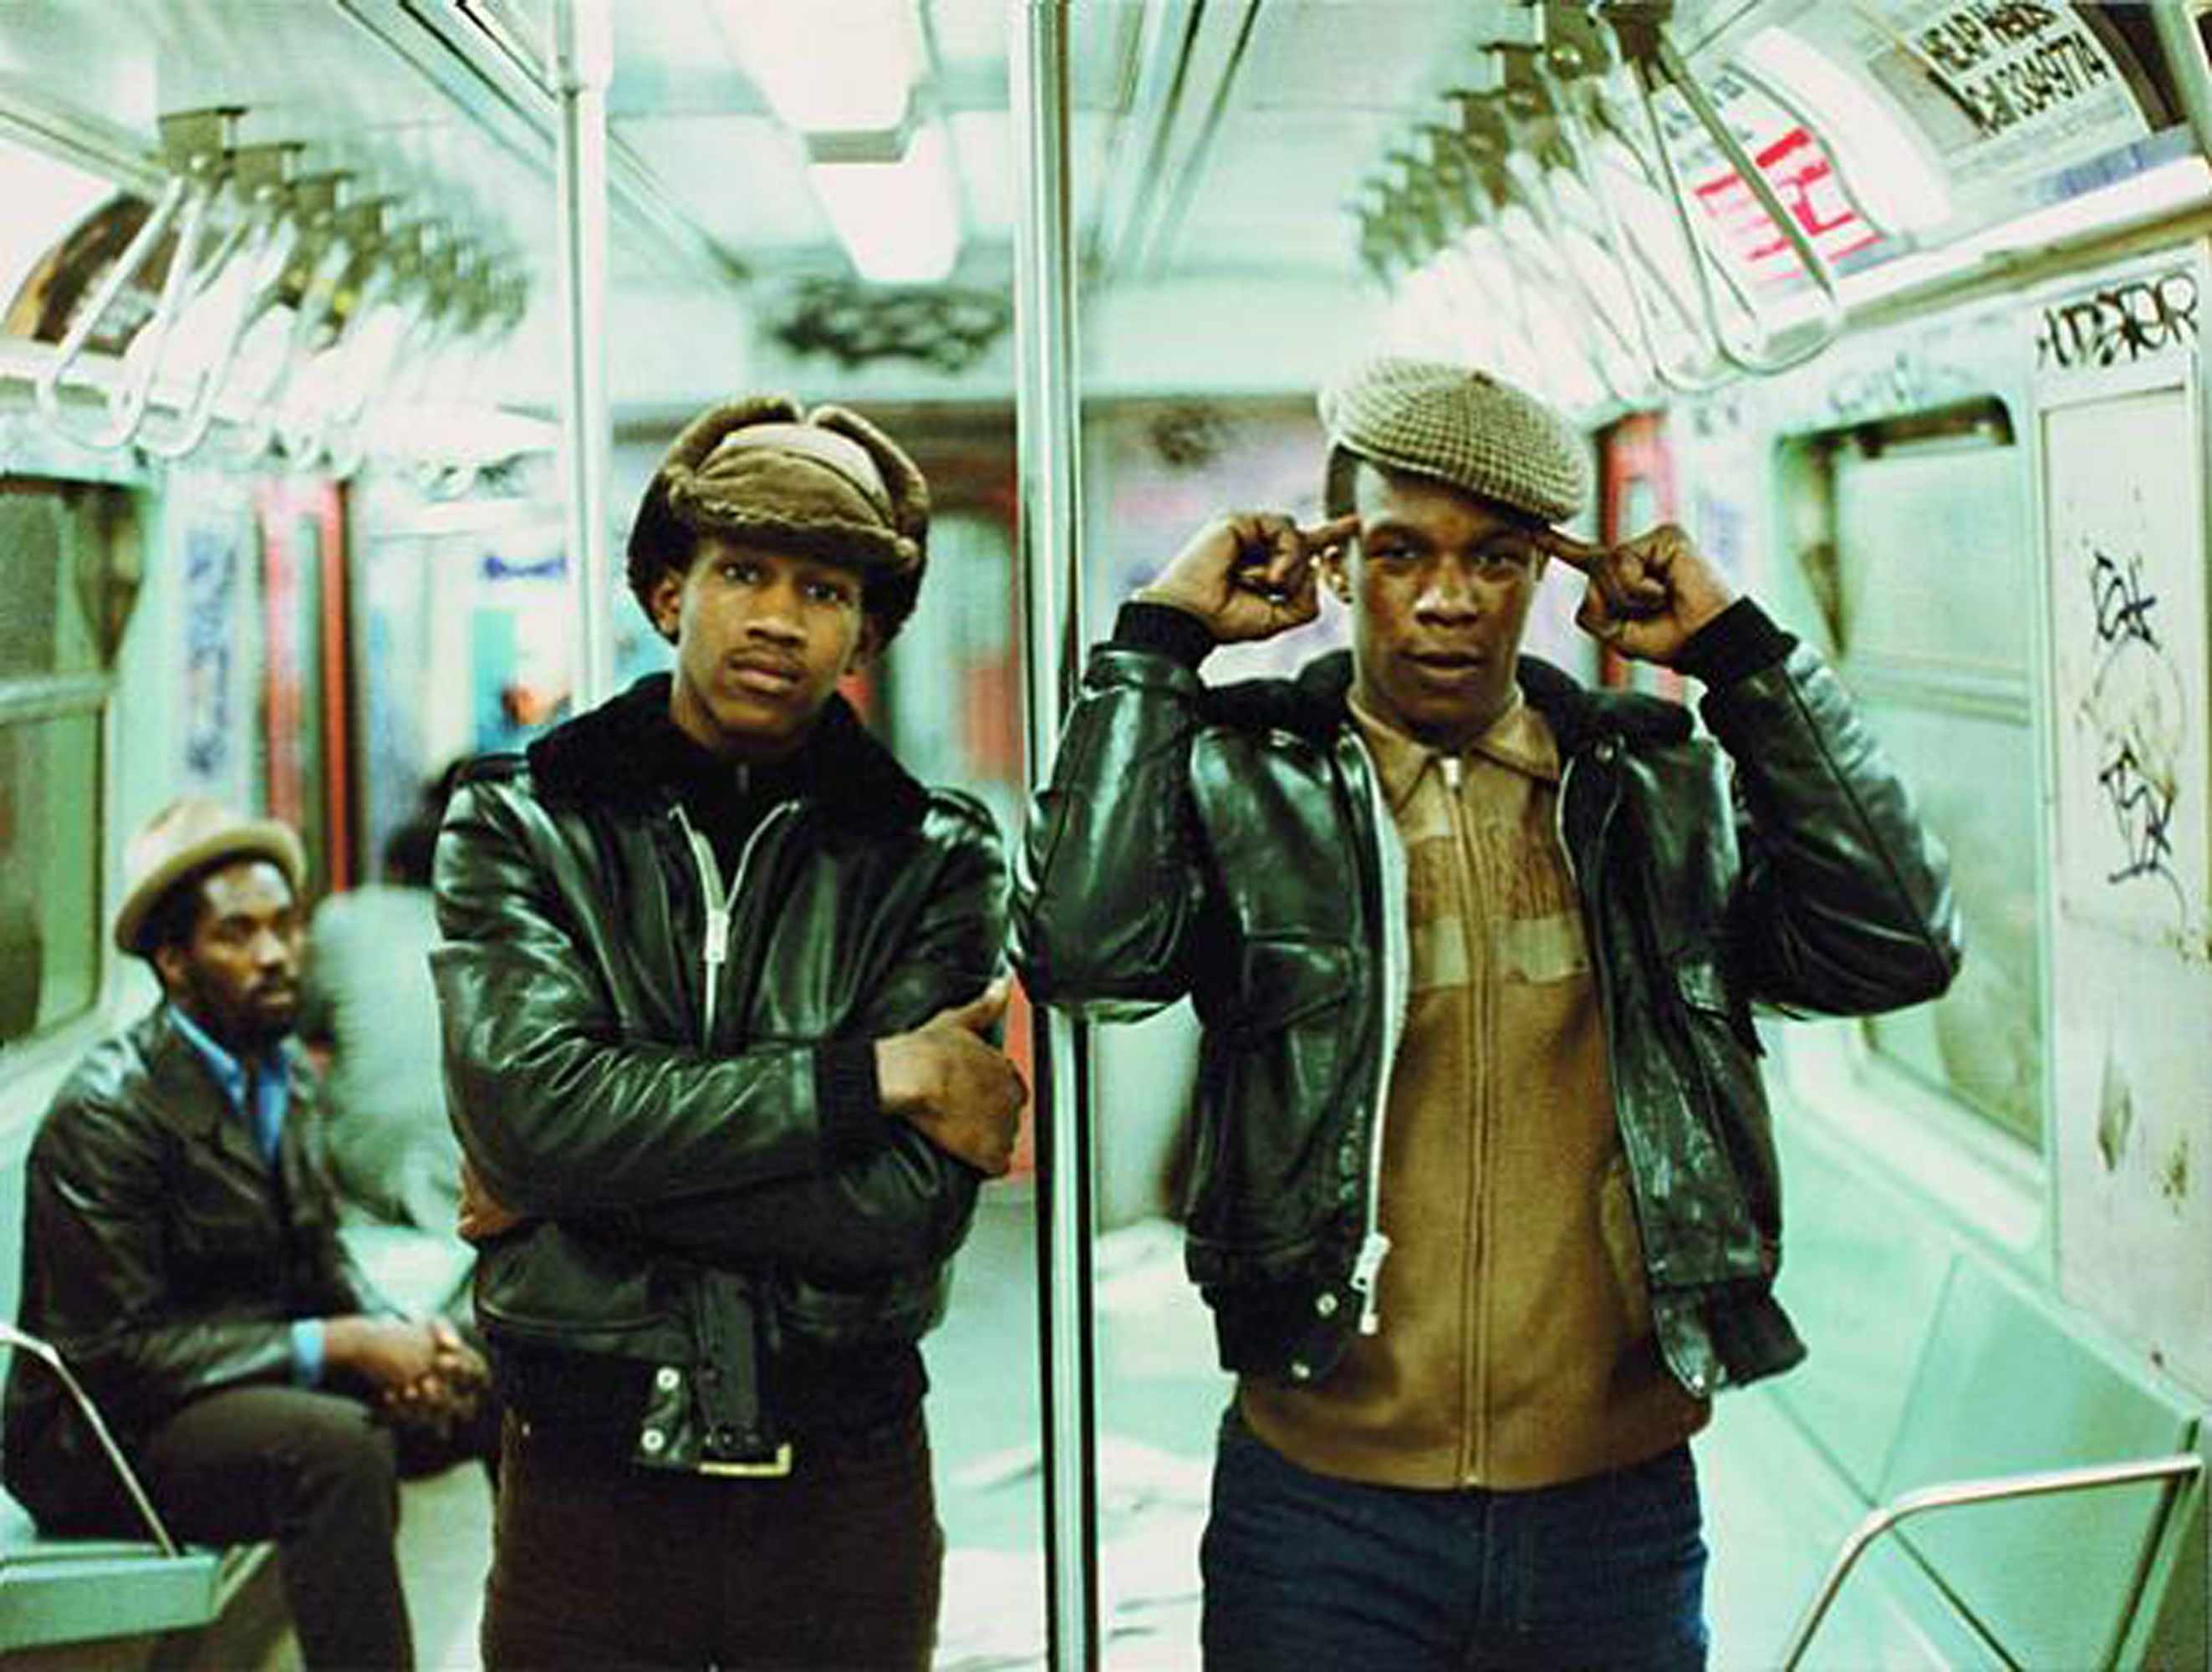 Jamel Shabazz | Photography | Pinterest | Tag image